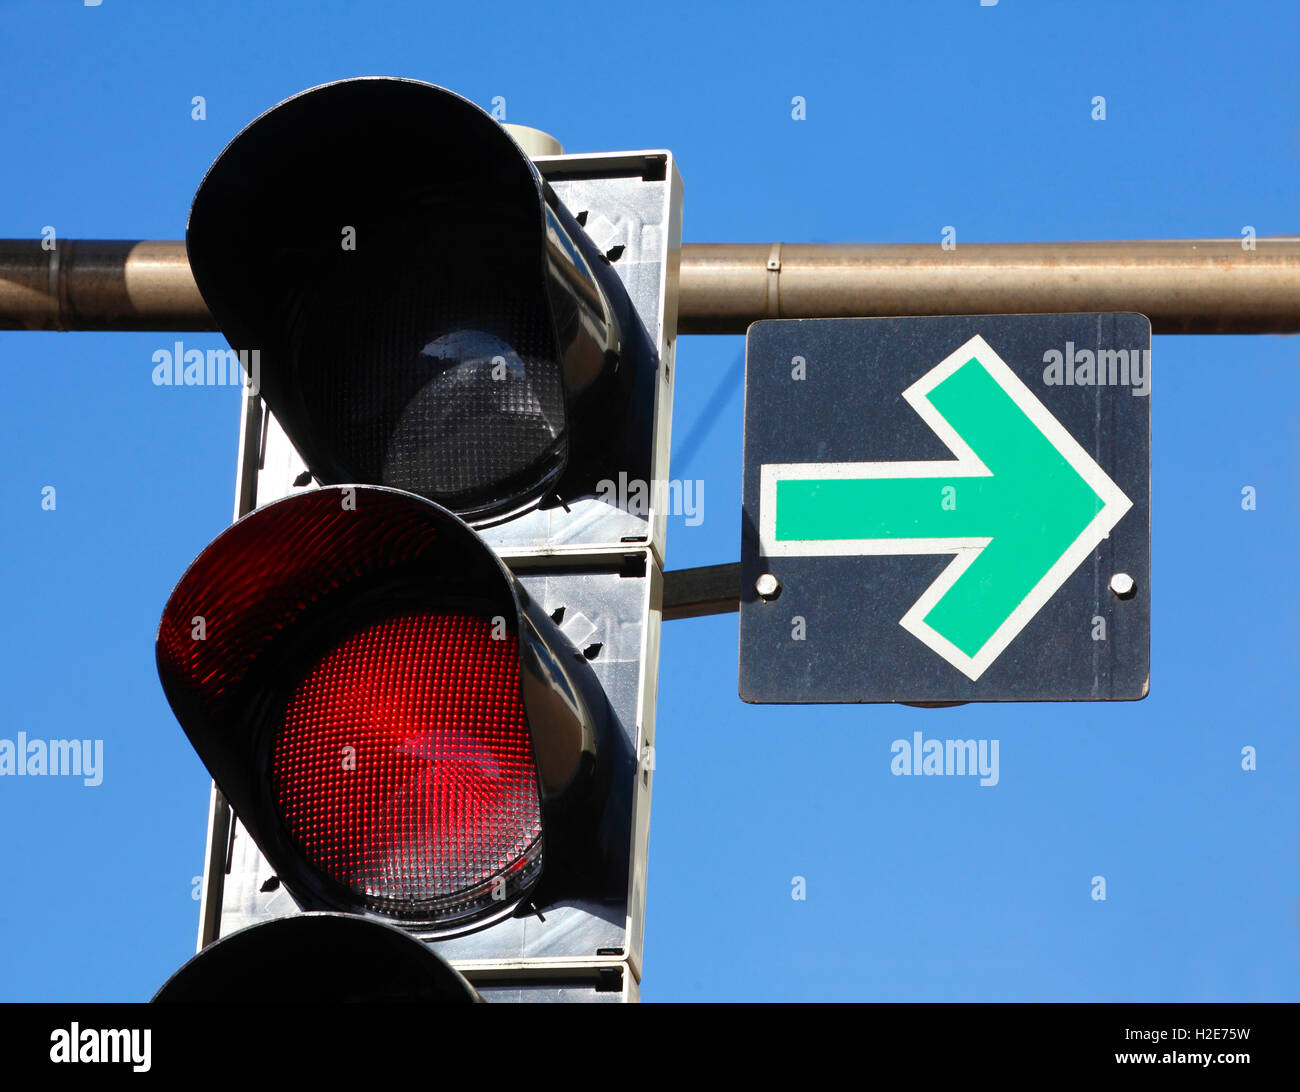 Road sign, green arrow and red traffic light, Germany - Stock Image